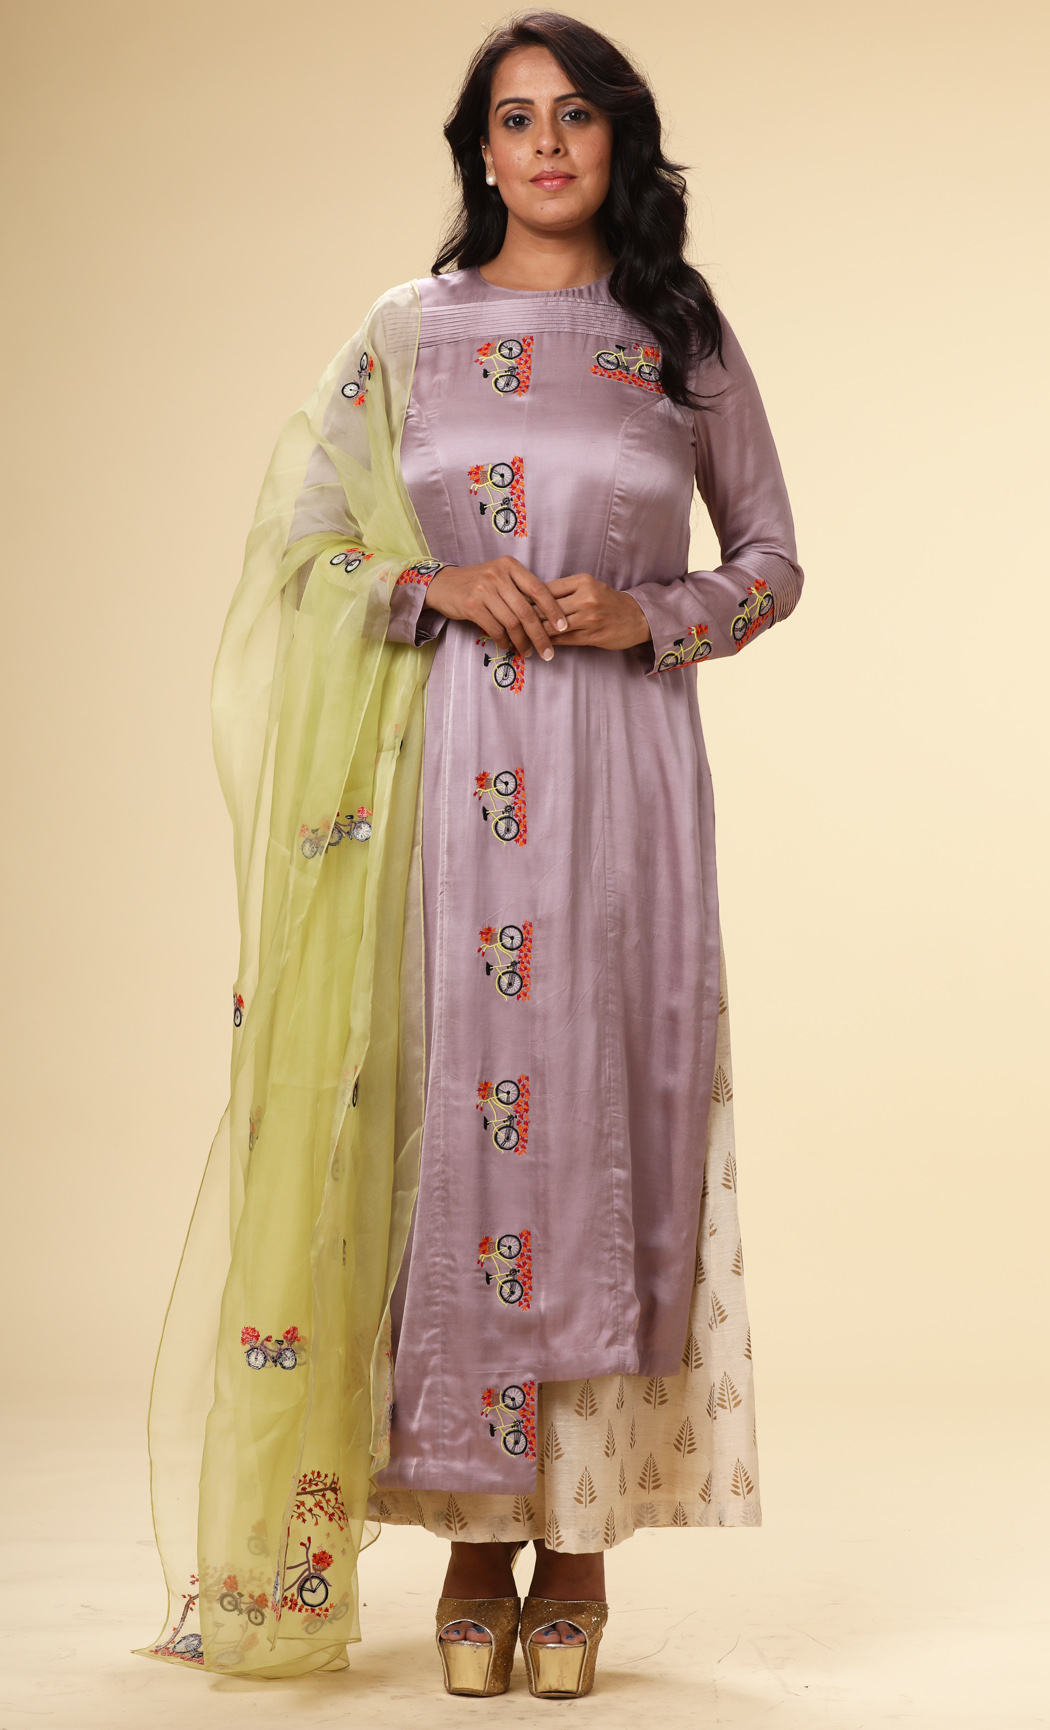 Purple Embroidered Kurta with a Green Dupatta and Pants - Buy Online